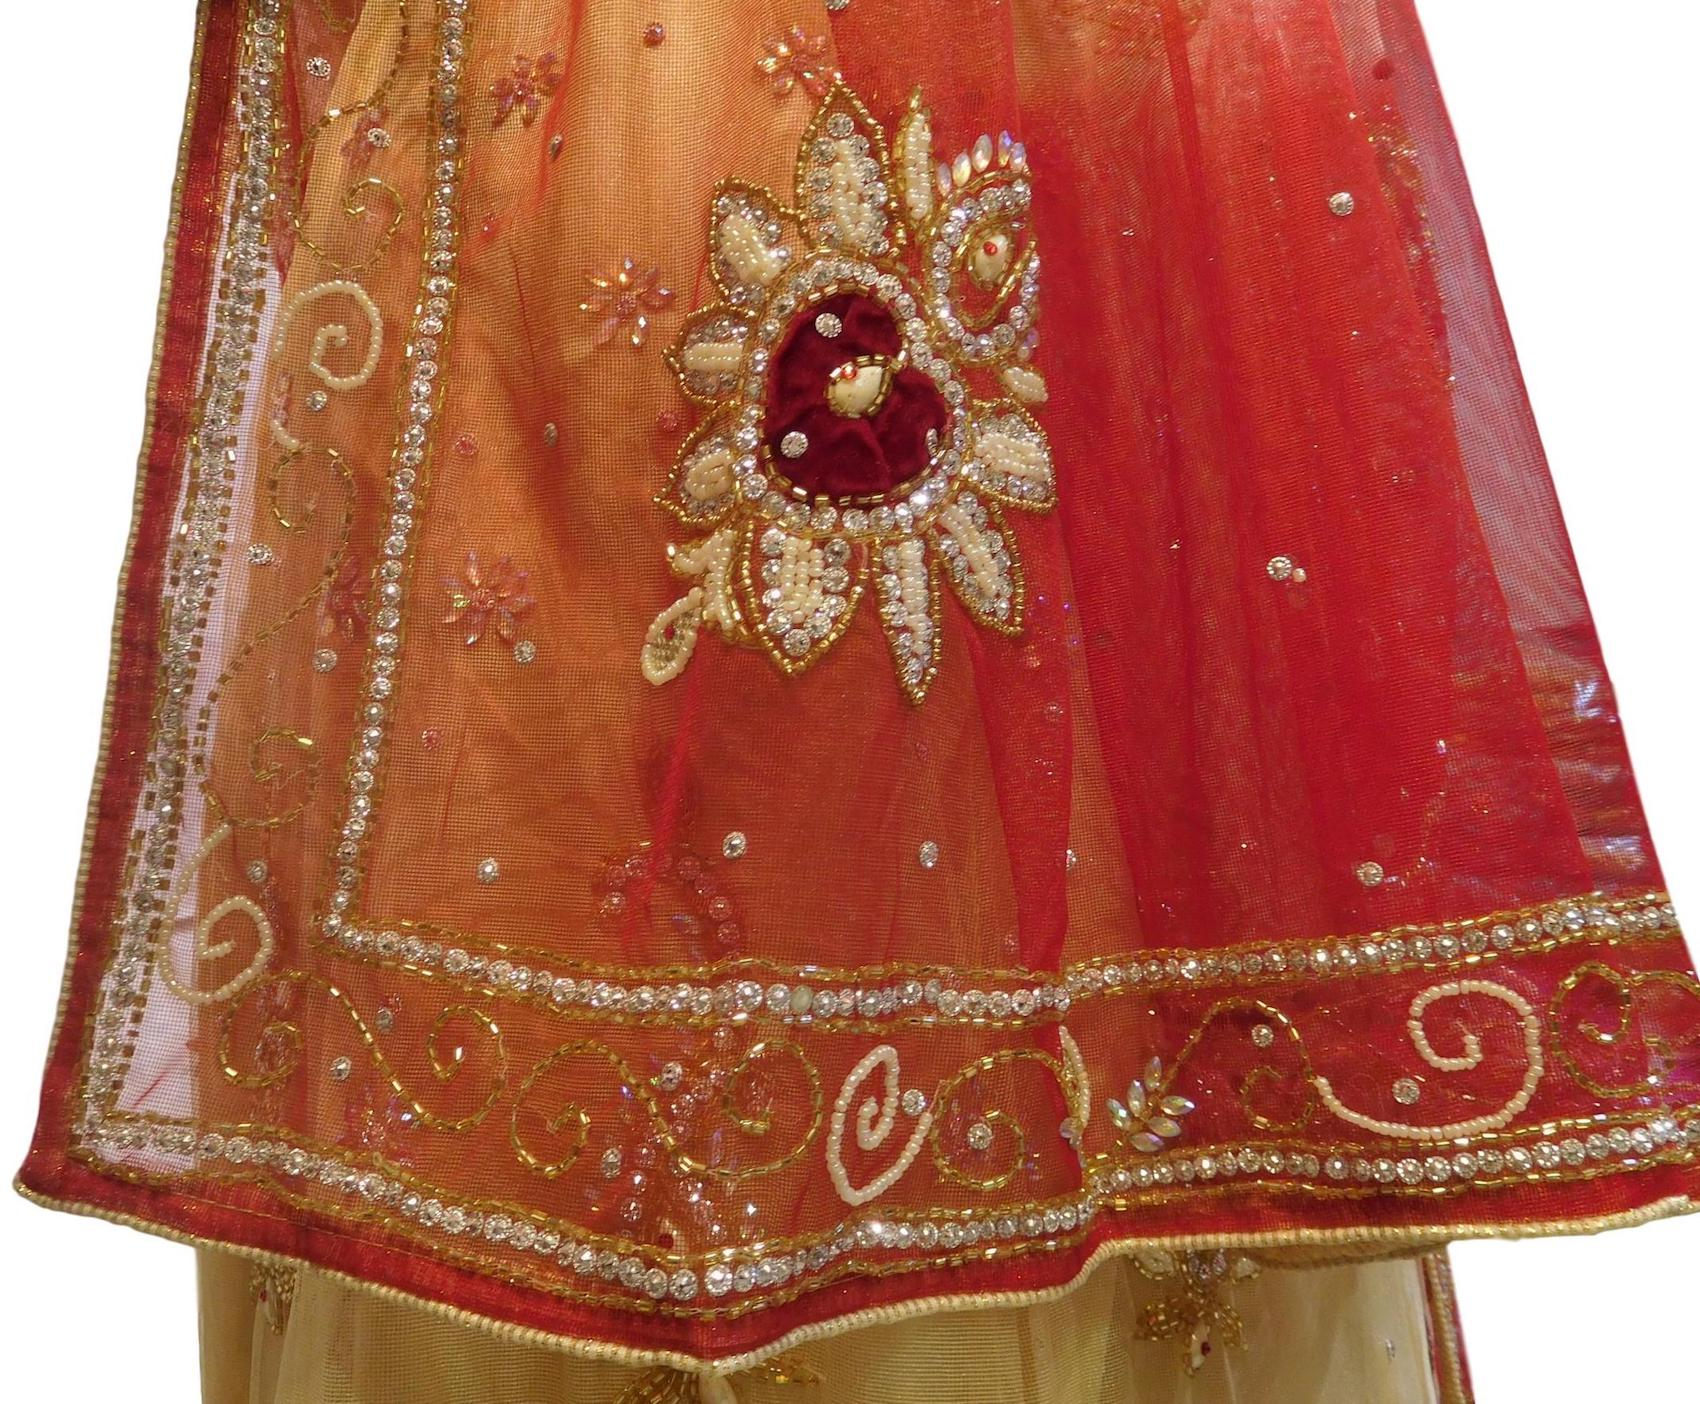 Cream & Red Designer Wedding Partywear Net Bullion Beads Stone Pearl Hand Embroidery Work Bridal Lahenga Choli Dupatta Semistitched LAE174